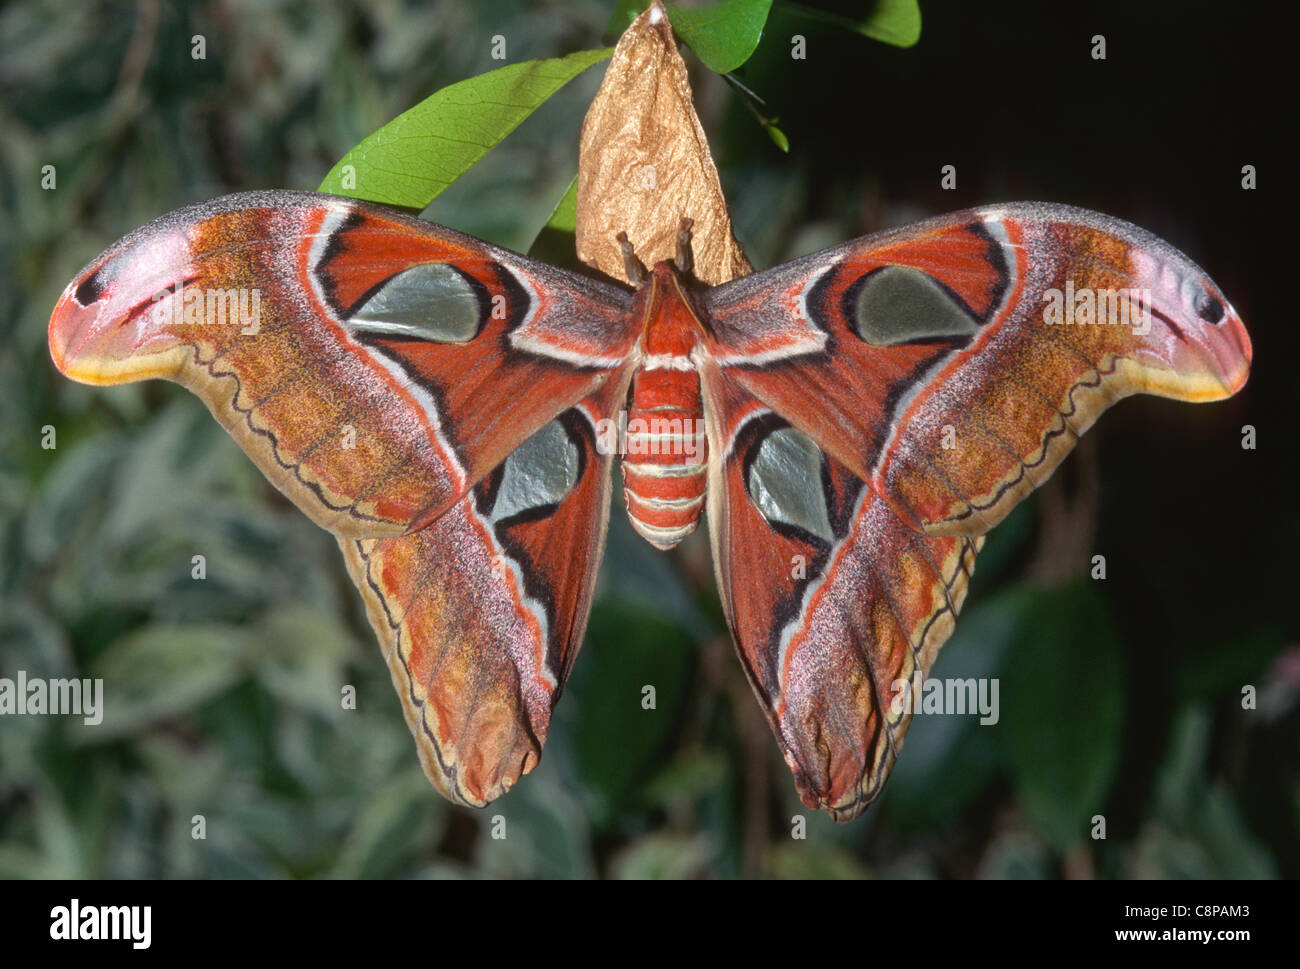 ATLAS MOTH (Attacus atlas), are the largest moths in the world with a wingspan from 10-12 inches, native to southeast - Stock Image